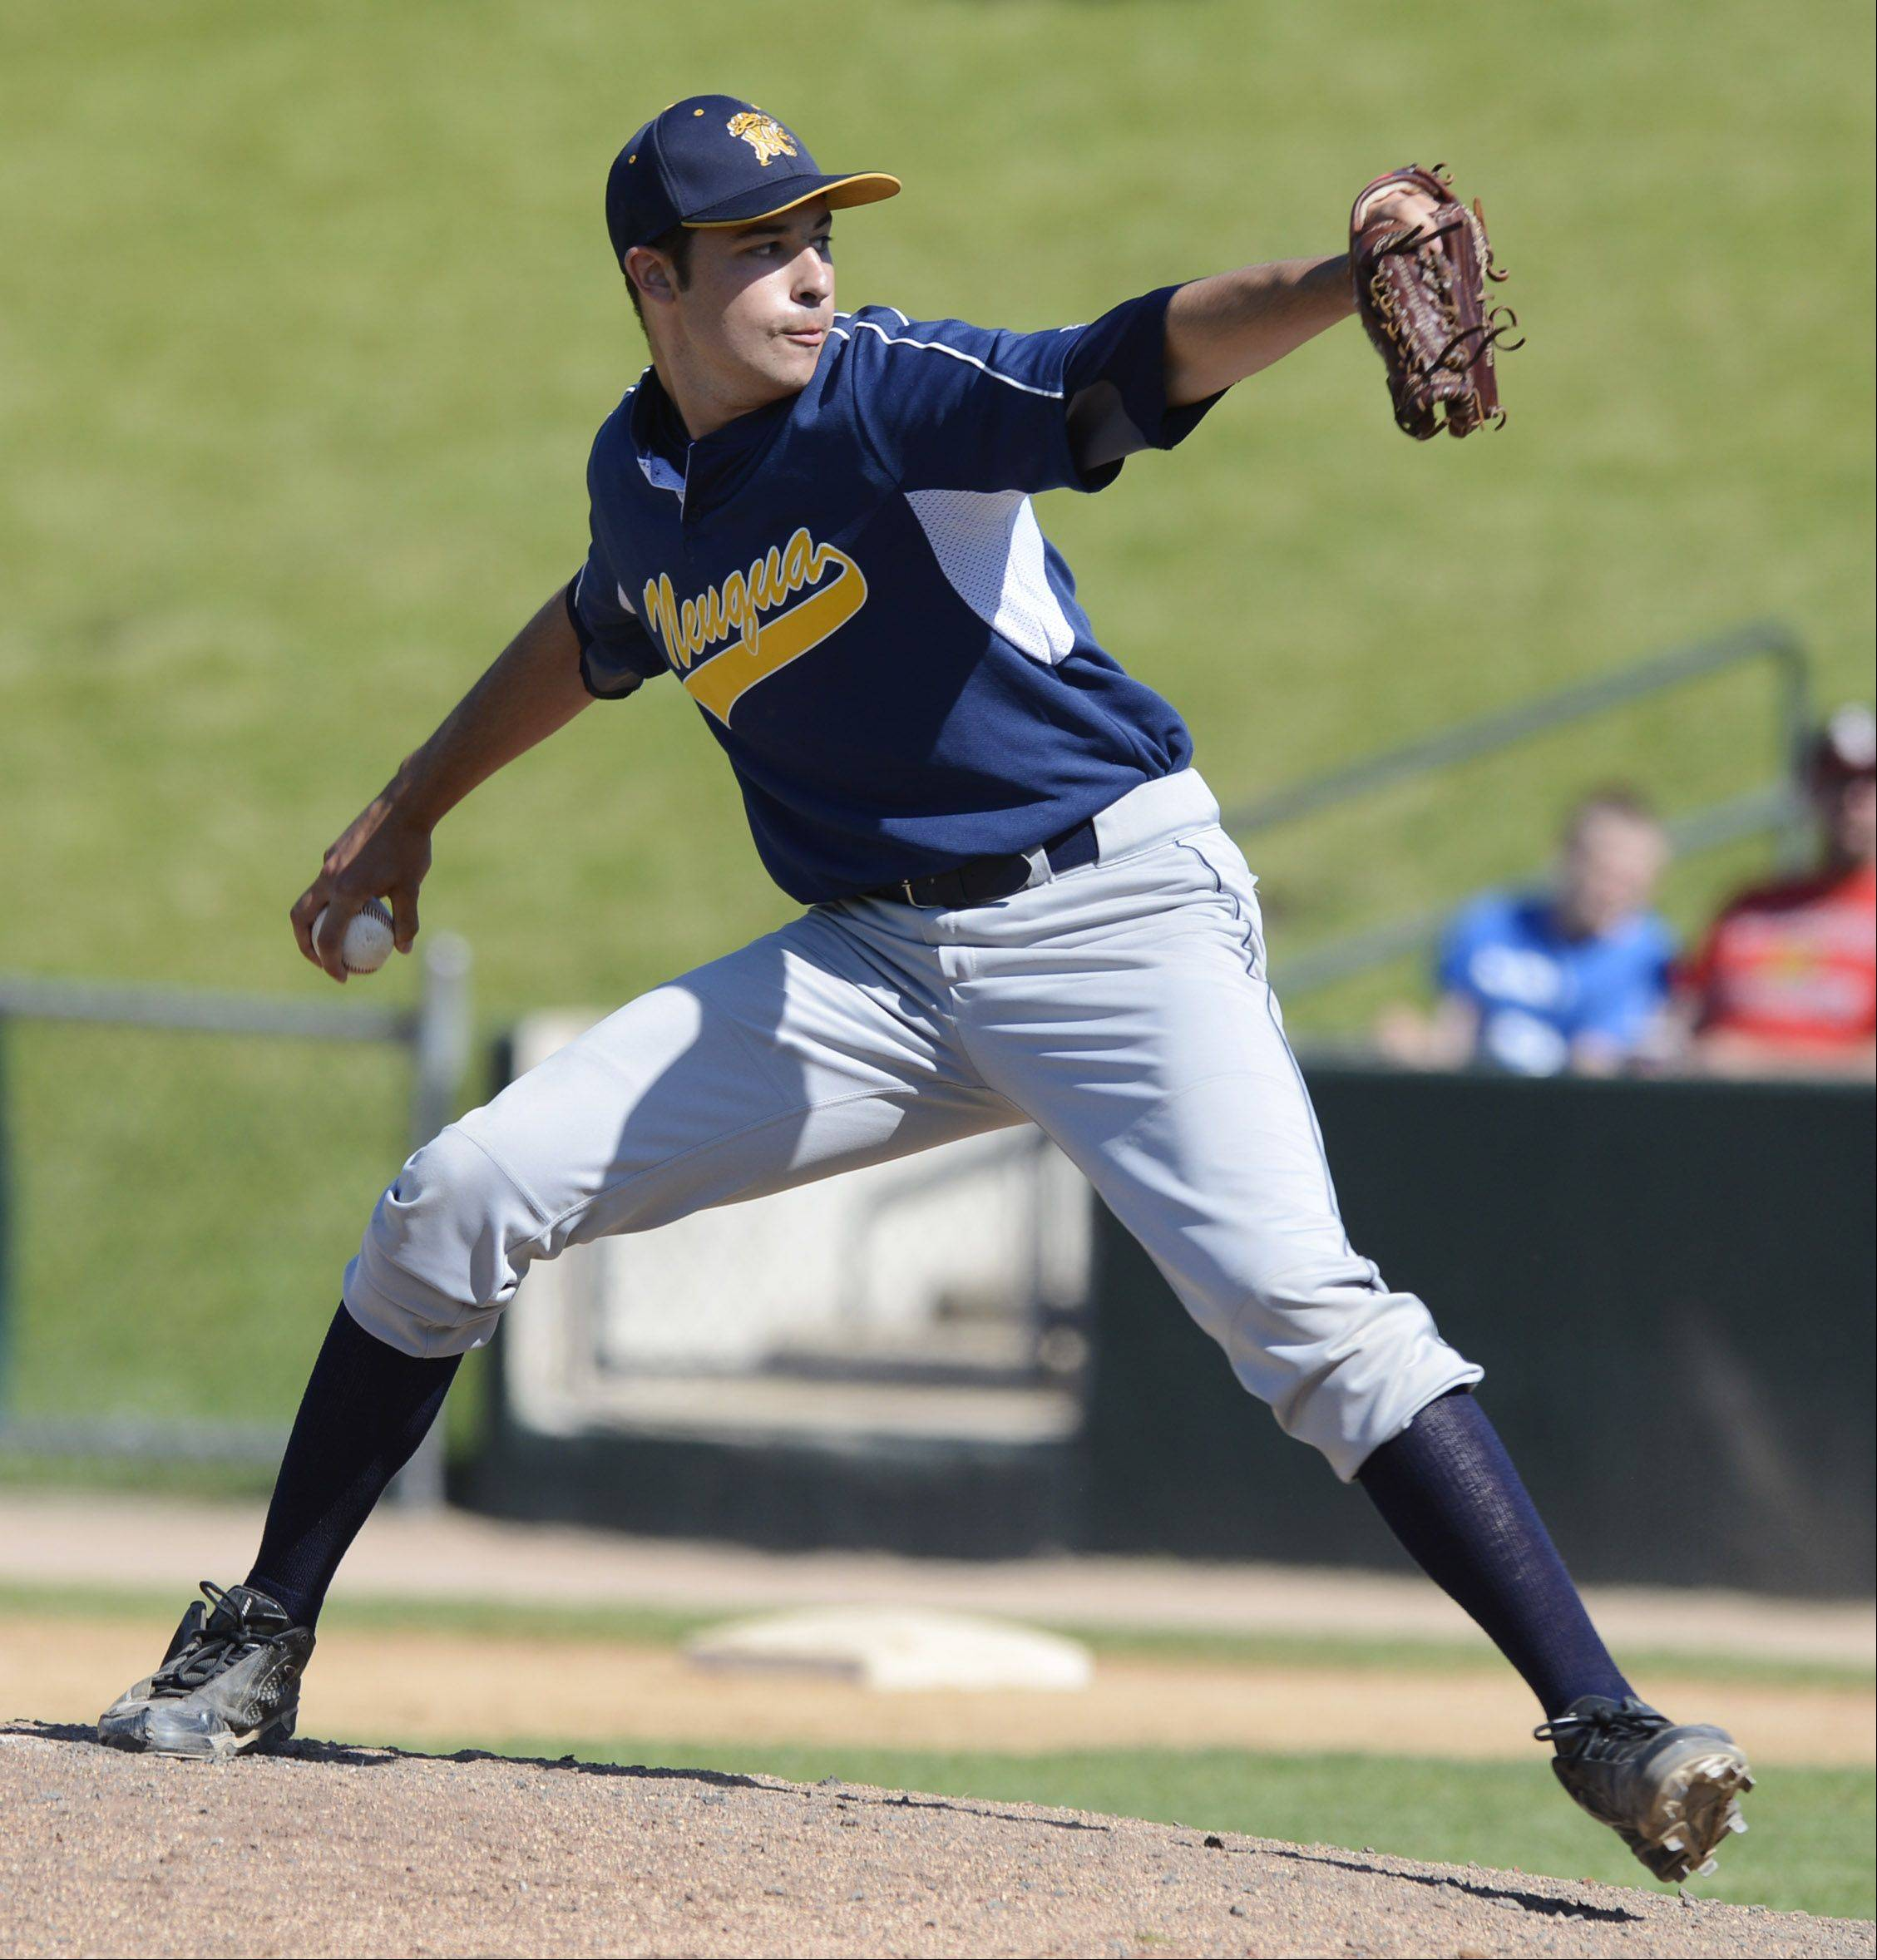 Neuqua Valley relief pitcher David Gerber delivers during the Class 4A state baseball semifinals against Mt. Carmel at Silver Cross Field in Joliet Friday.